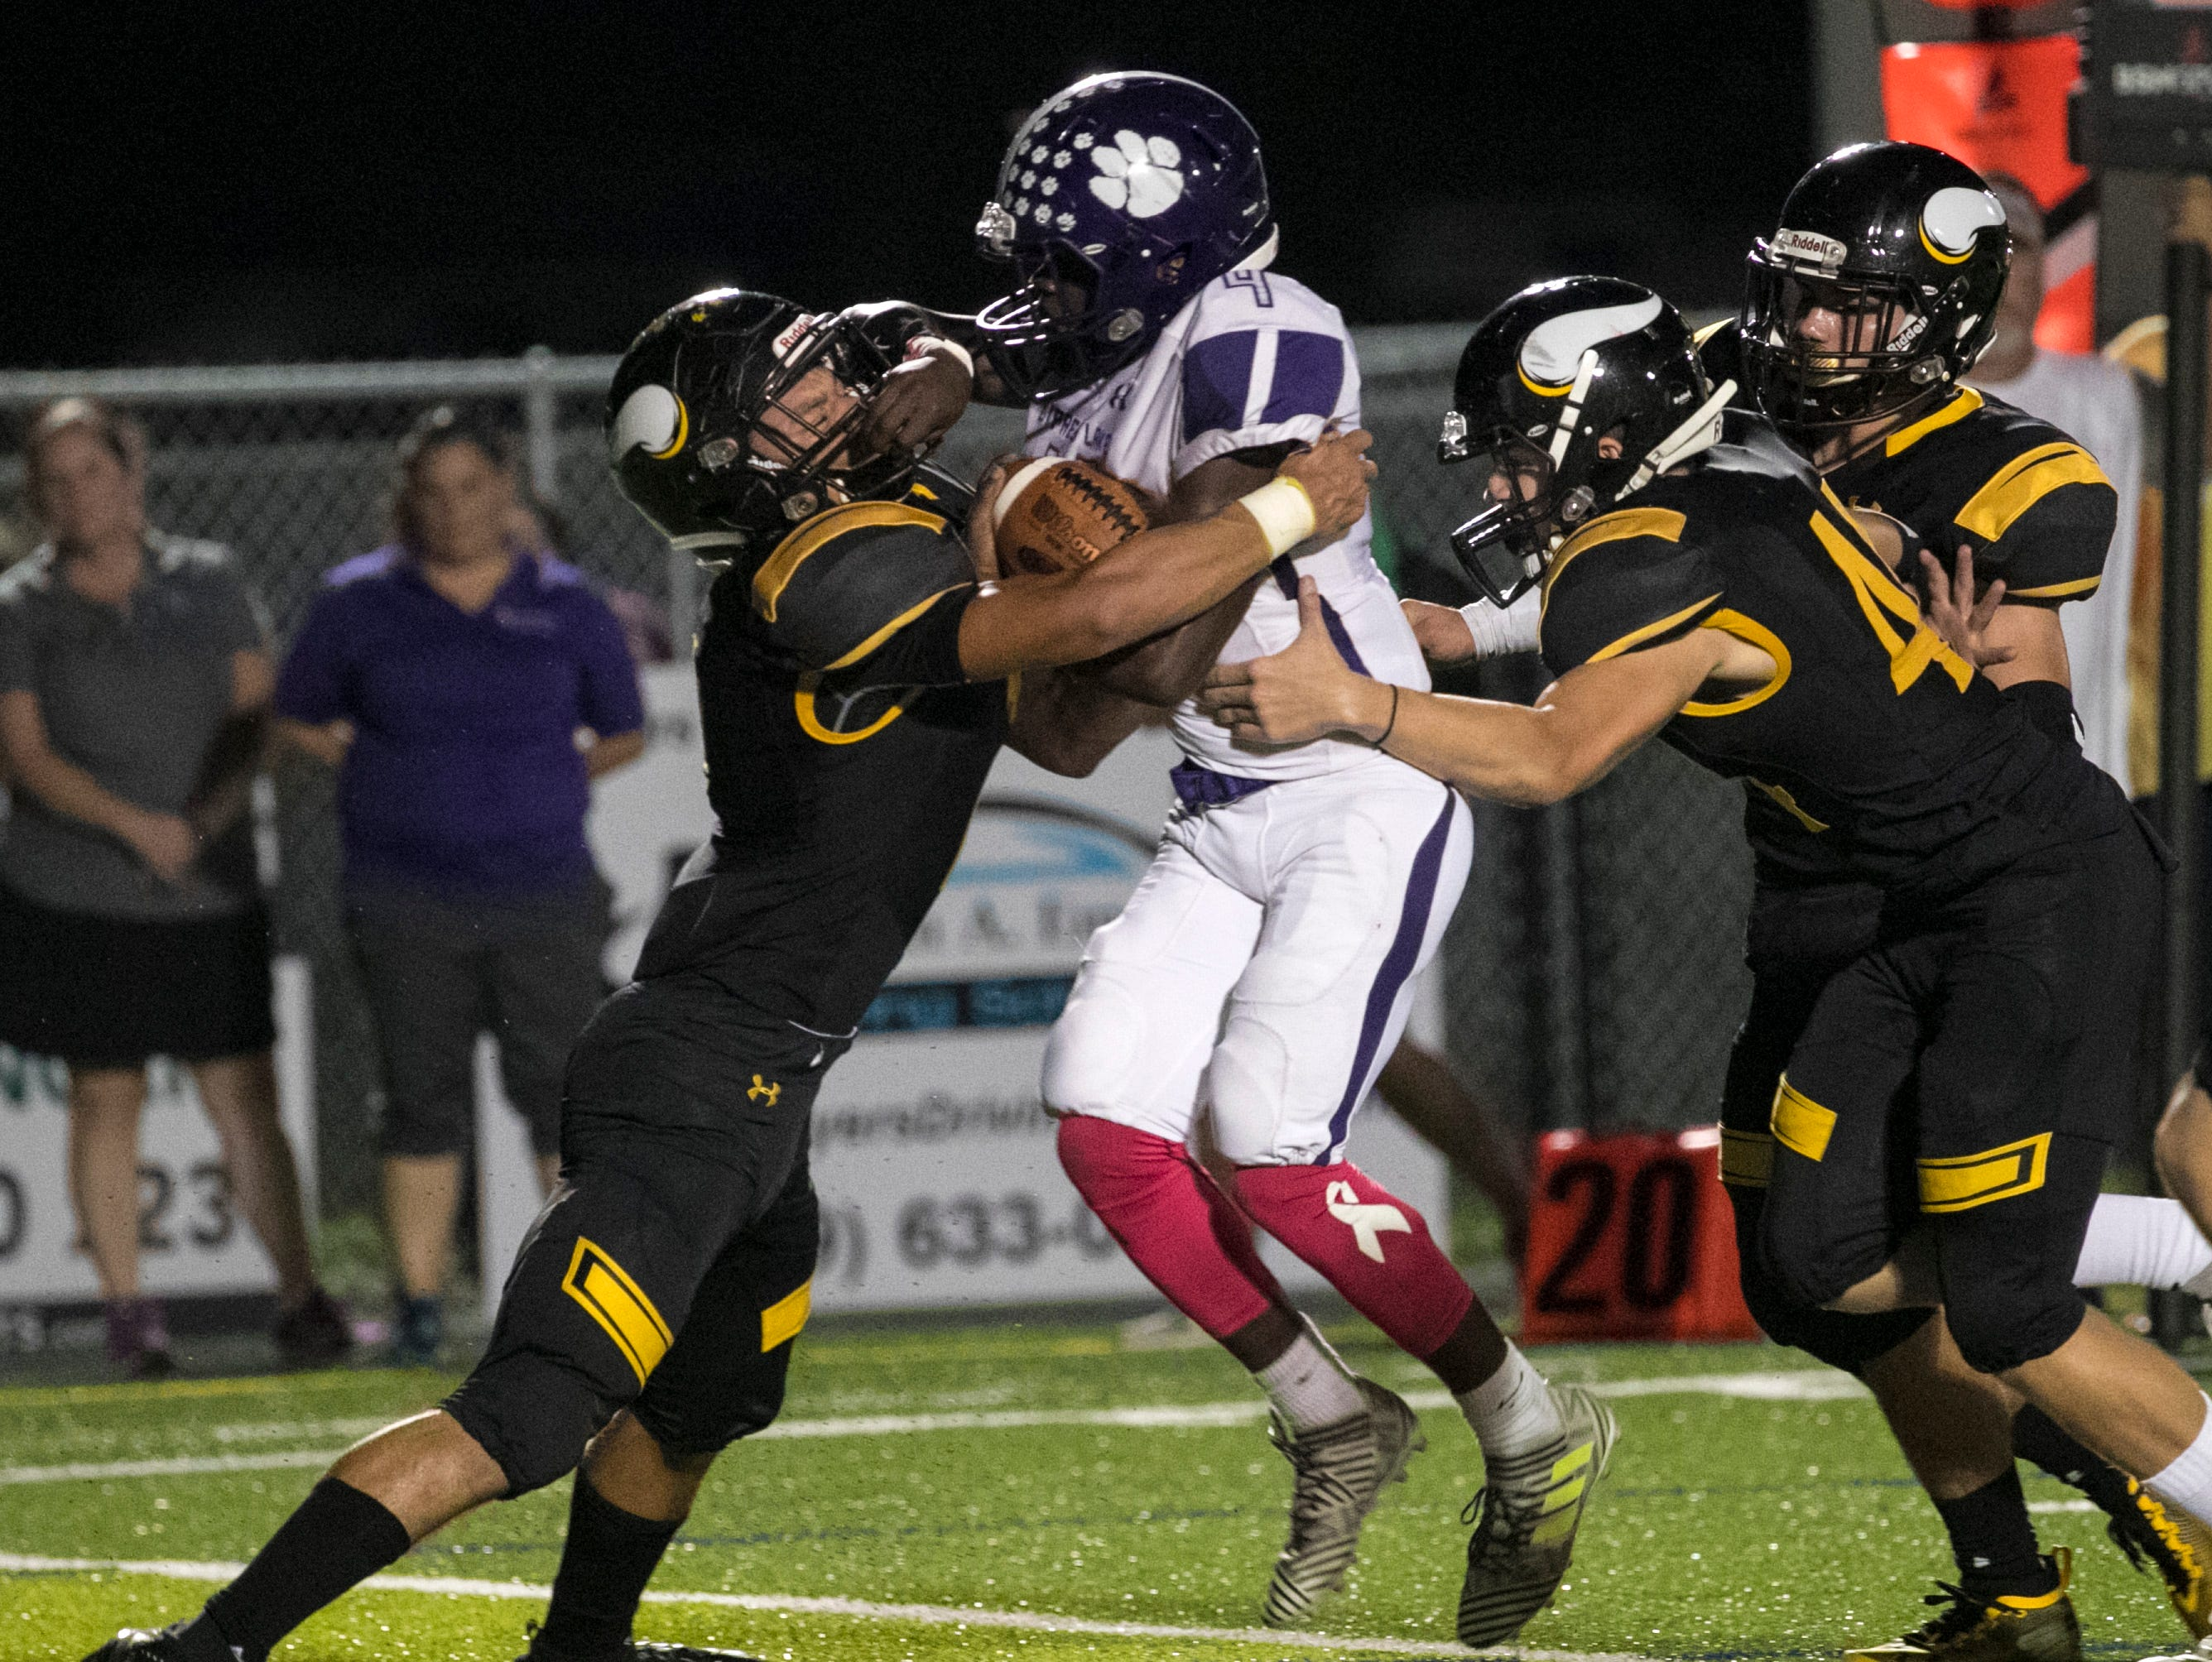 Koby Moore of Cypress Lake tries to get past Dominic Febels of Bishop Verot on Friday night, October 5, 2018, at Bishop Verot High School.